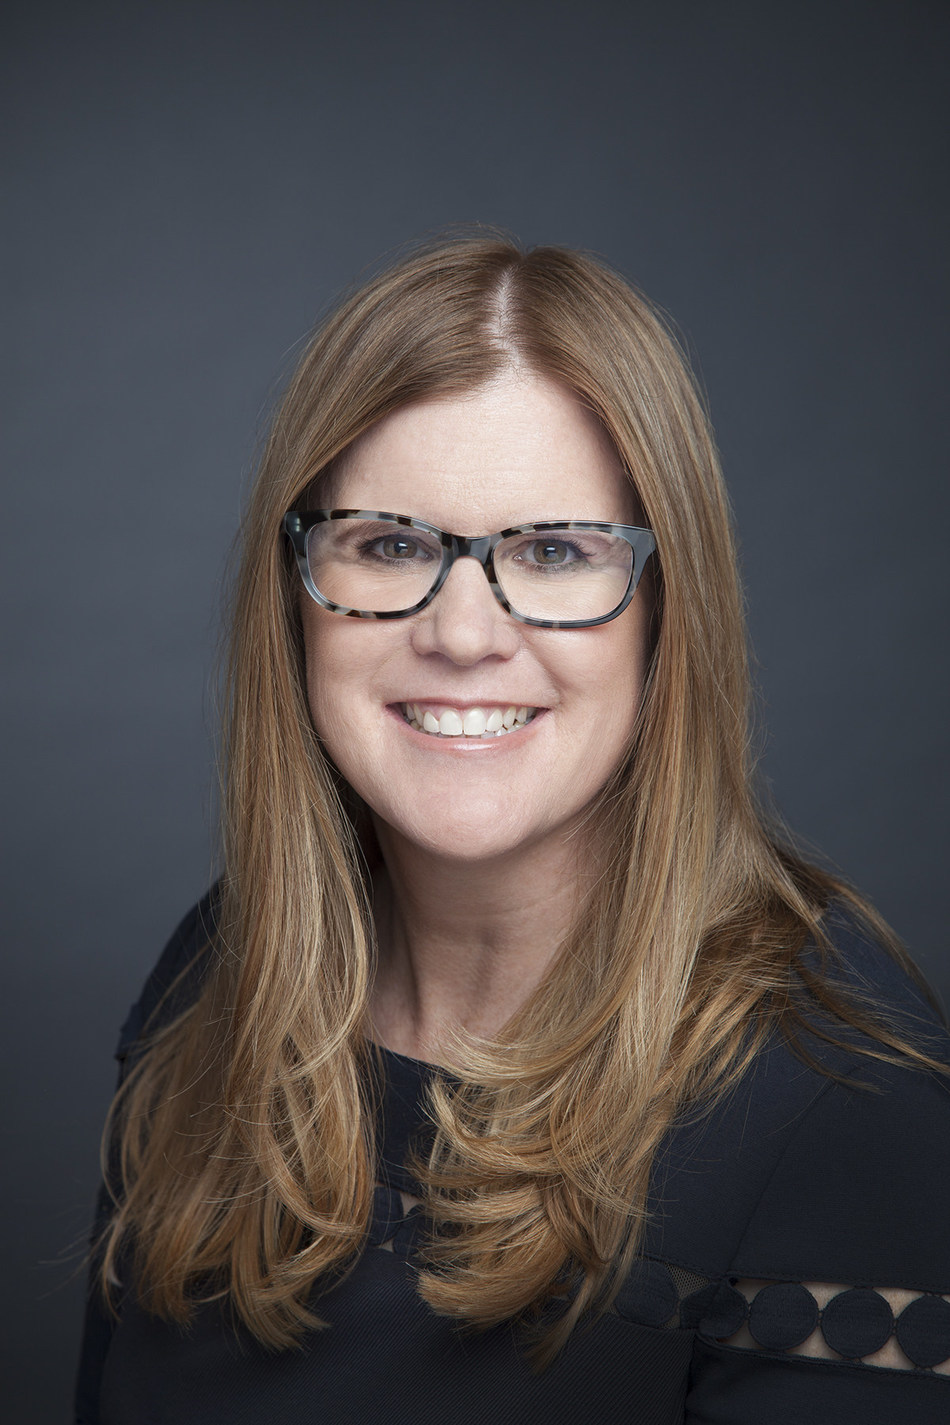 TPG Growth and Liberty Global Launch Independent Television Studio, Platform One Media. Platform One Media to be led by industry veteran and former CEO of Gaumont Television, Katie O'Connell Marsh.